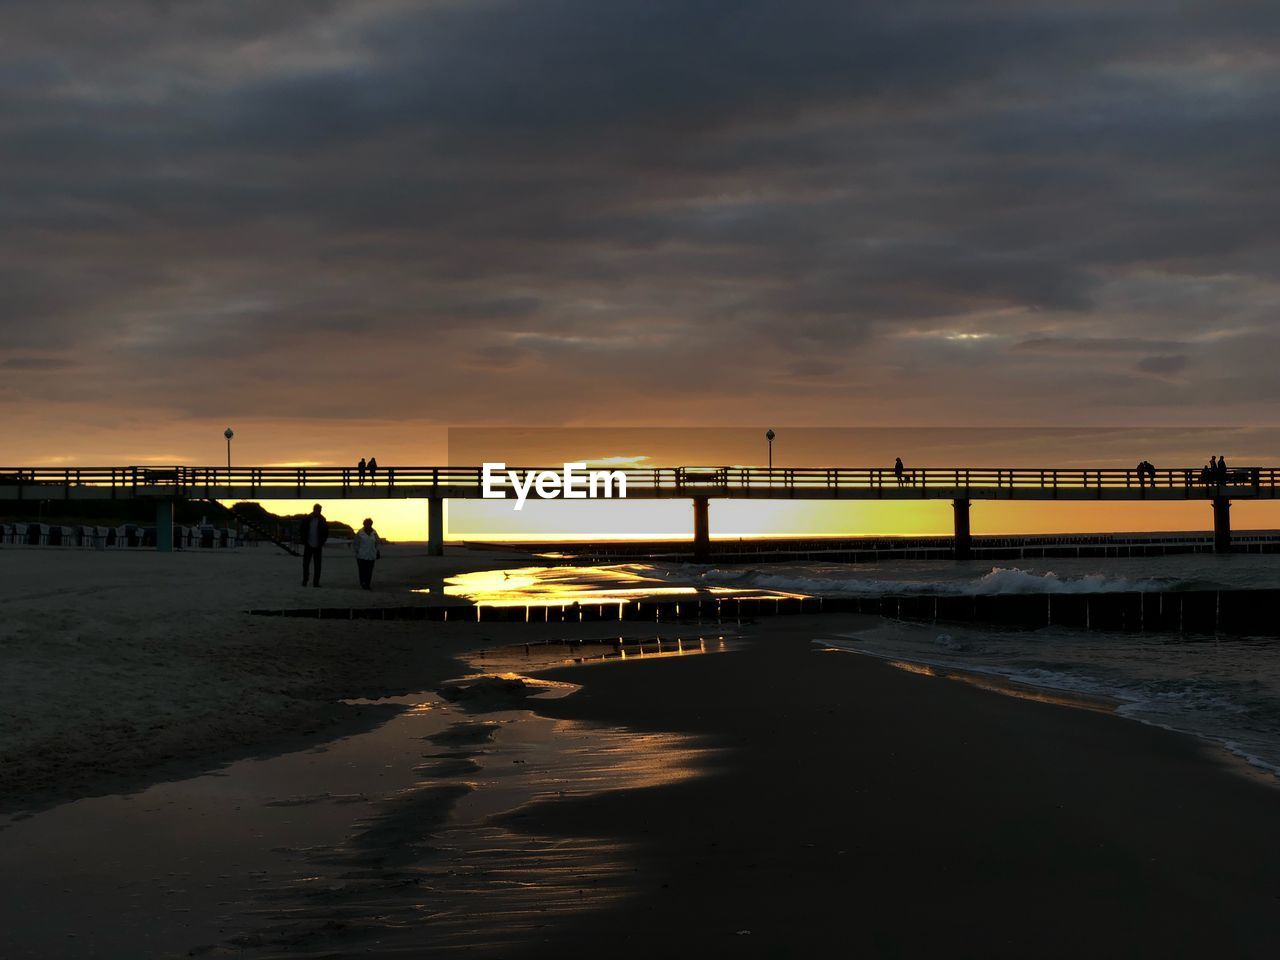 sky, cloud - sky, sunset, water, sea, built structure, nature, architecture, connection, scenics - nature, bridge, beauty in nature, land, bridge - man made structure, no people, beach, tranquility, transportation, tranquil scene, outdoors